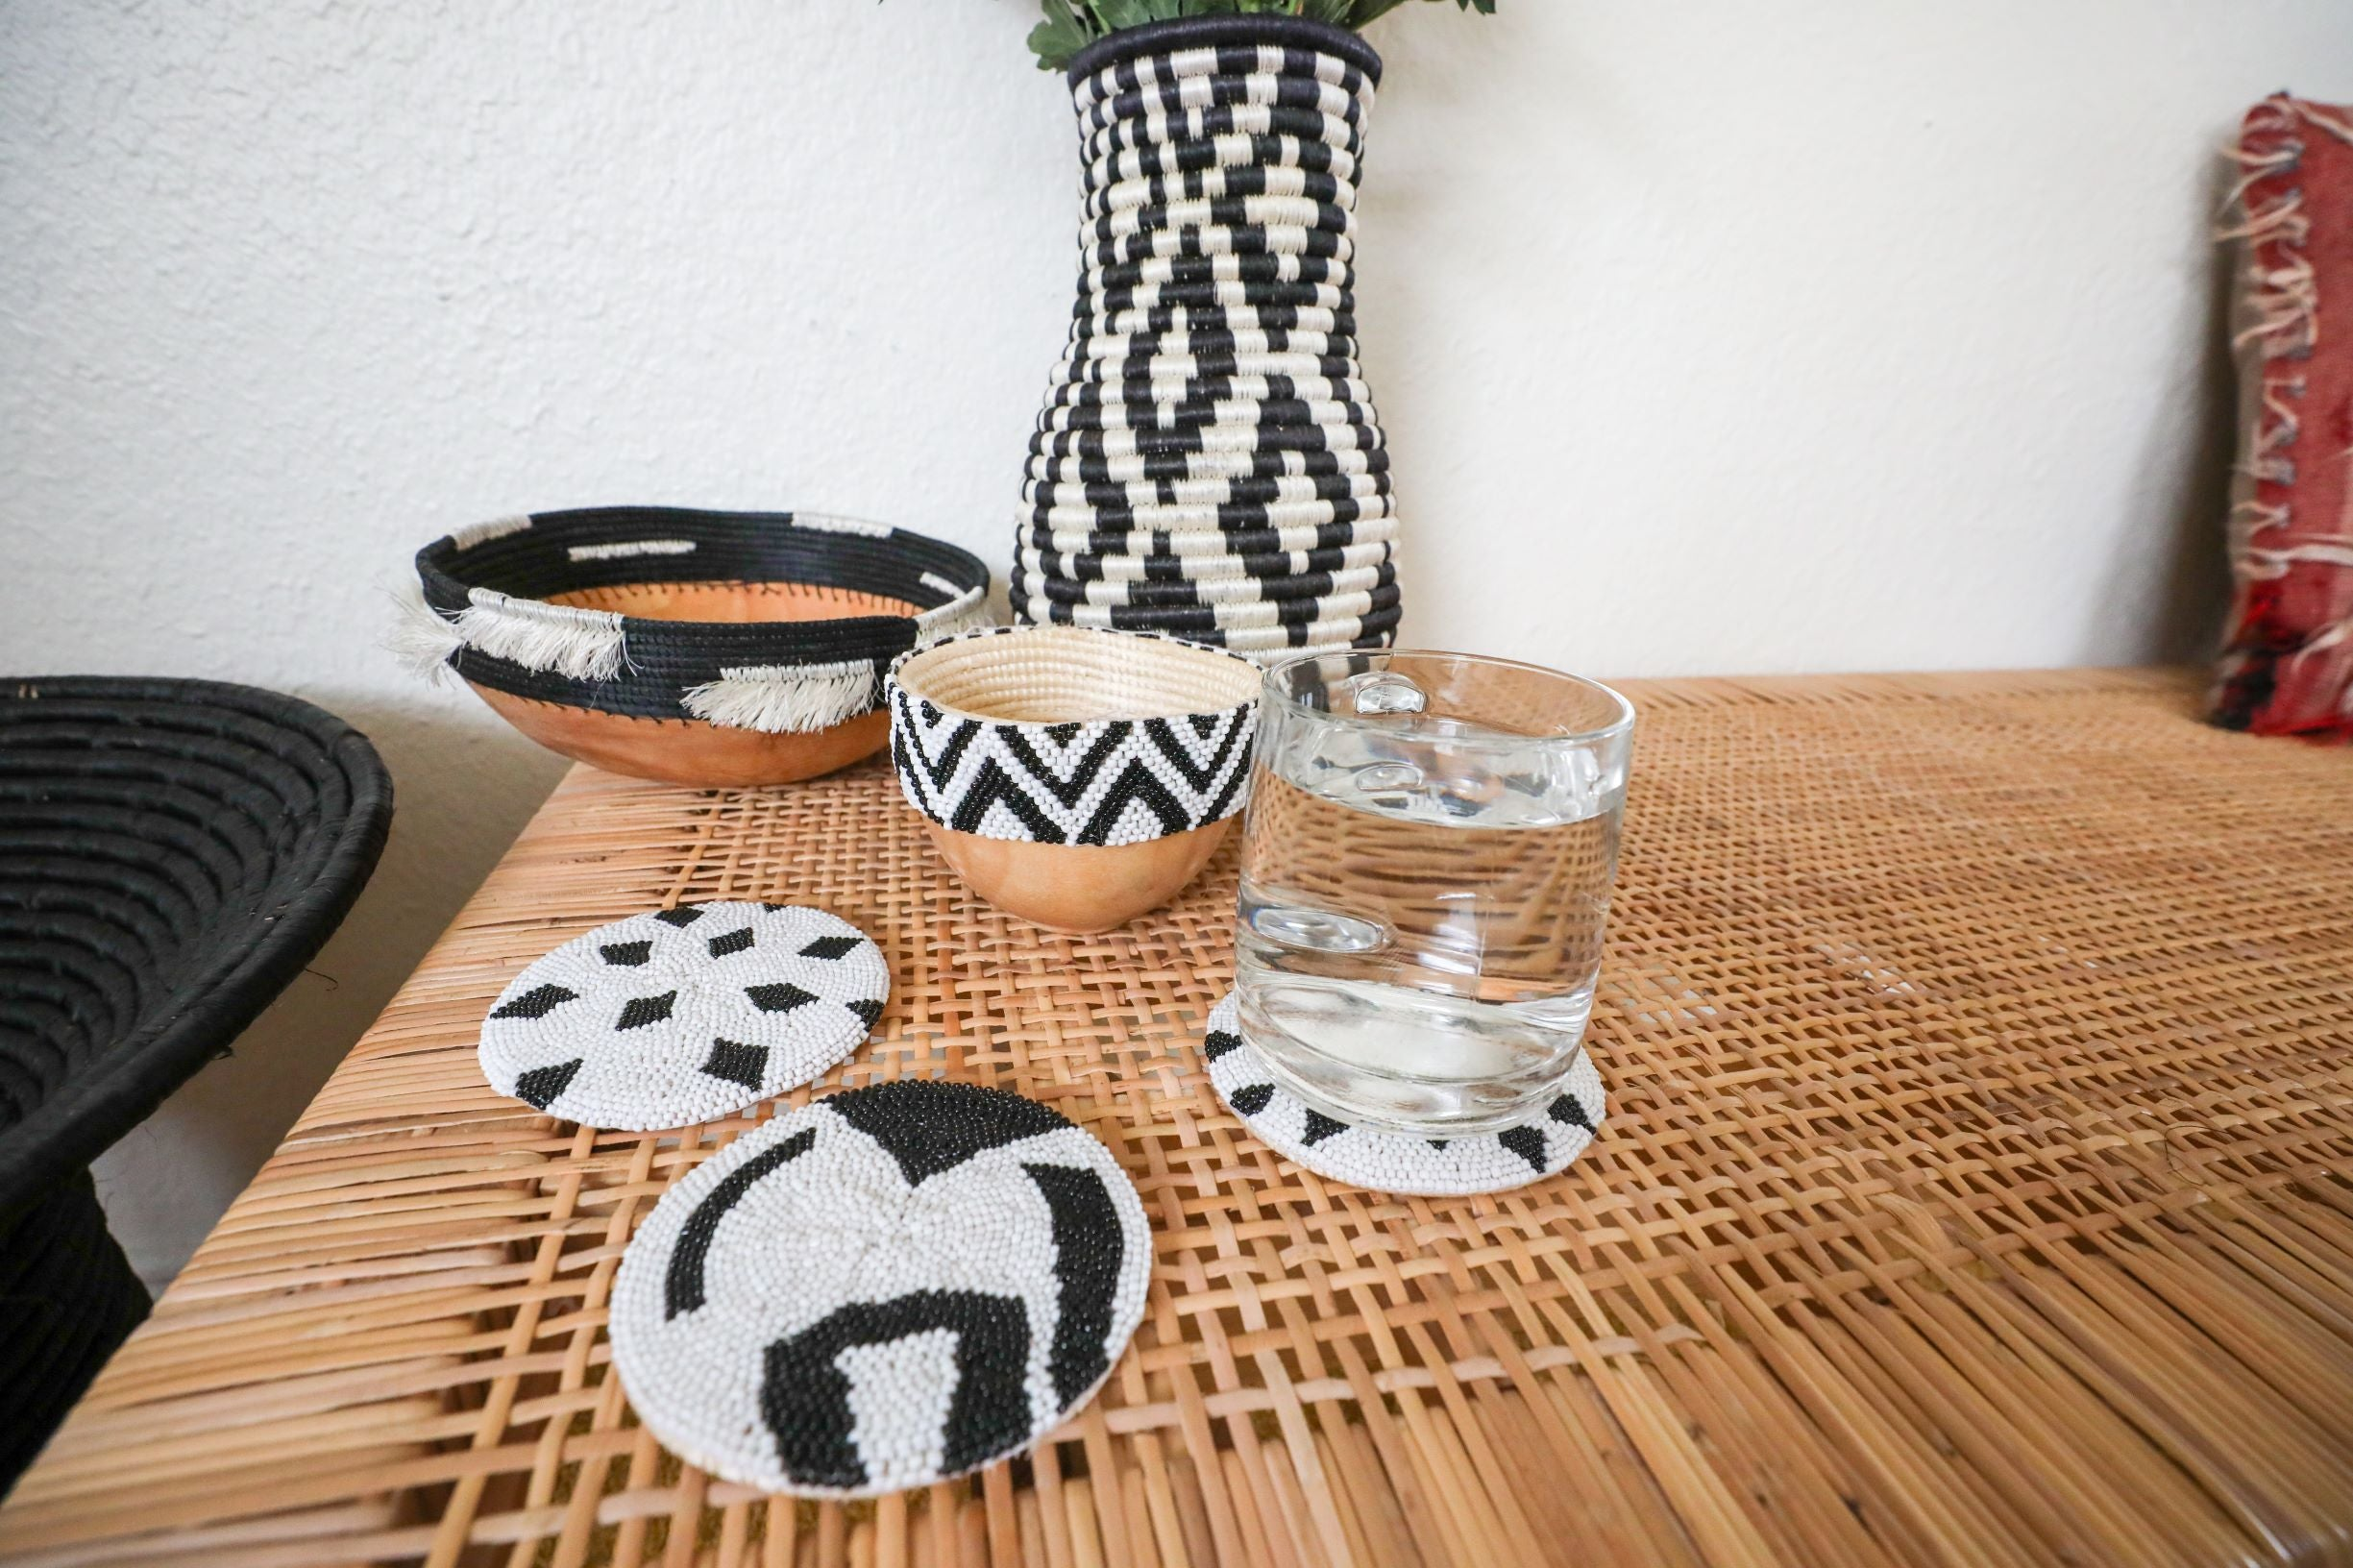 Black Beaded Atelier Coaster 01 - KAZI - Artisan made high quality home decor and wall art